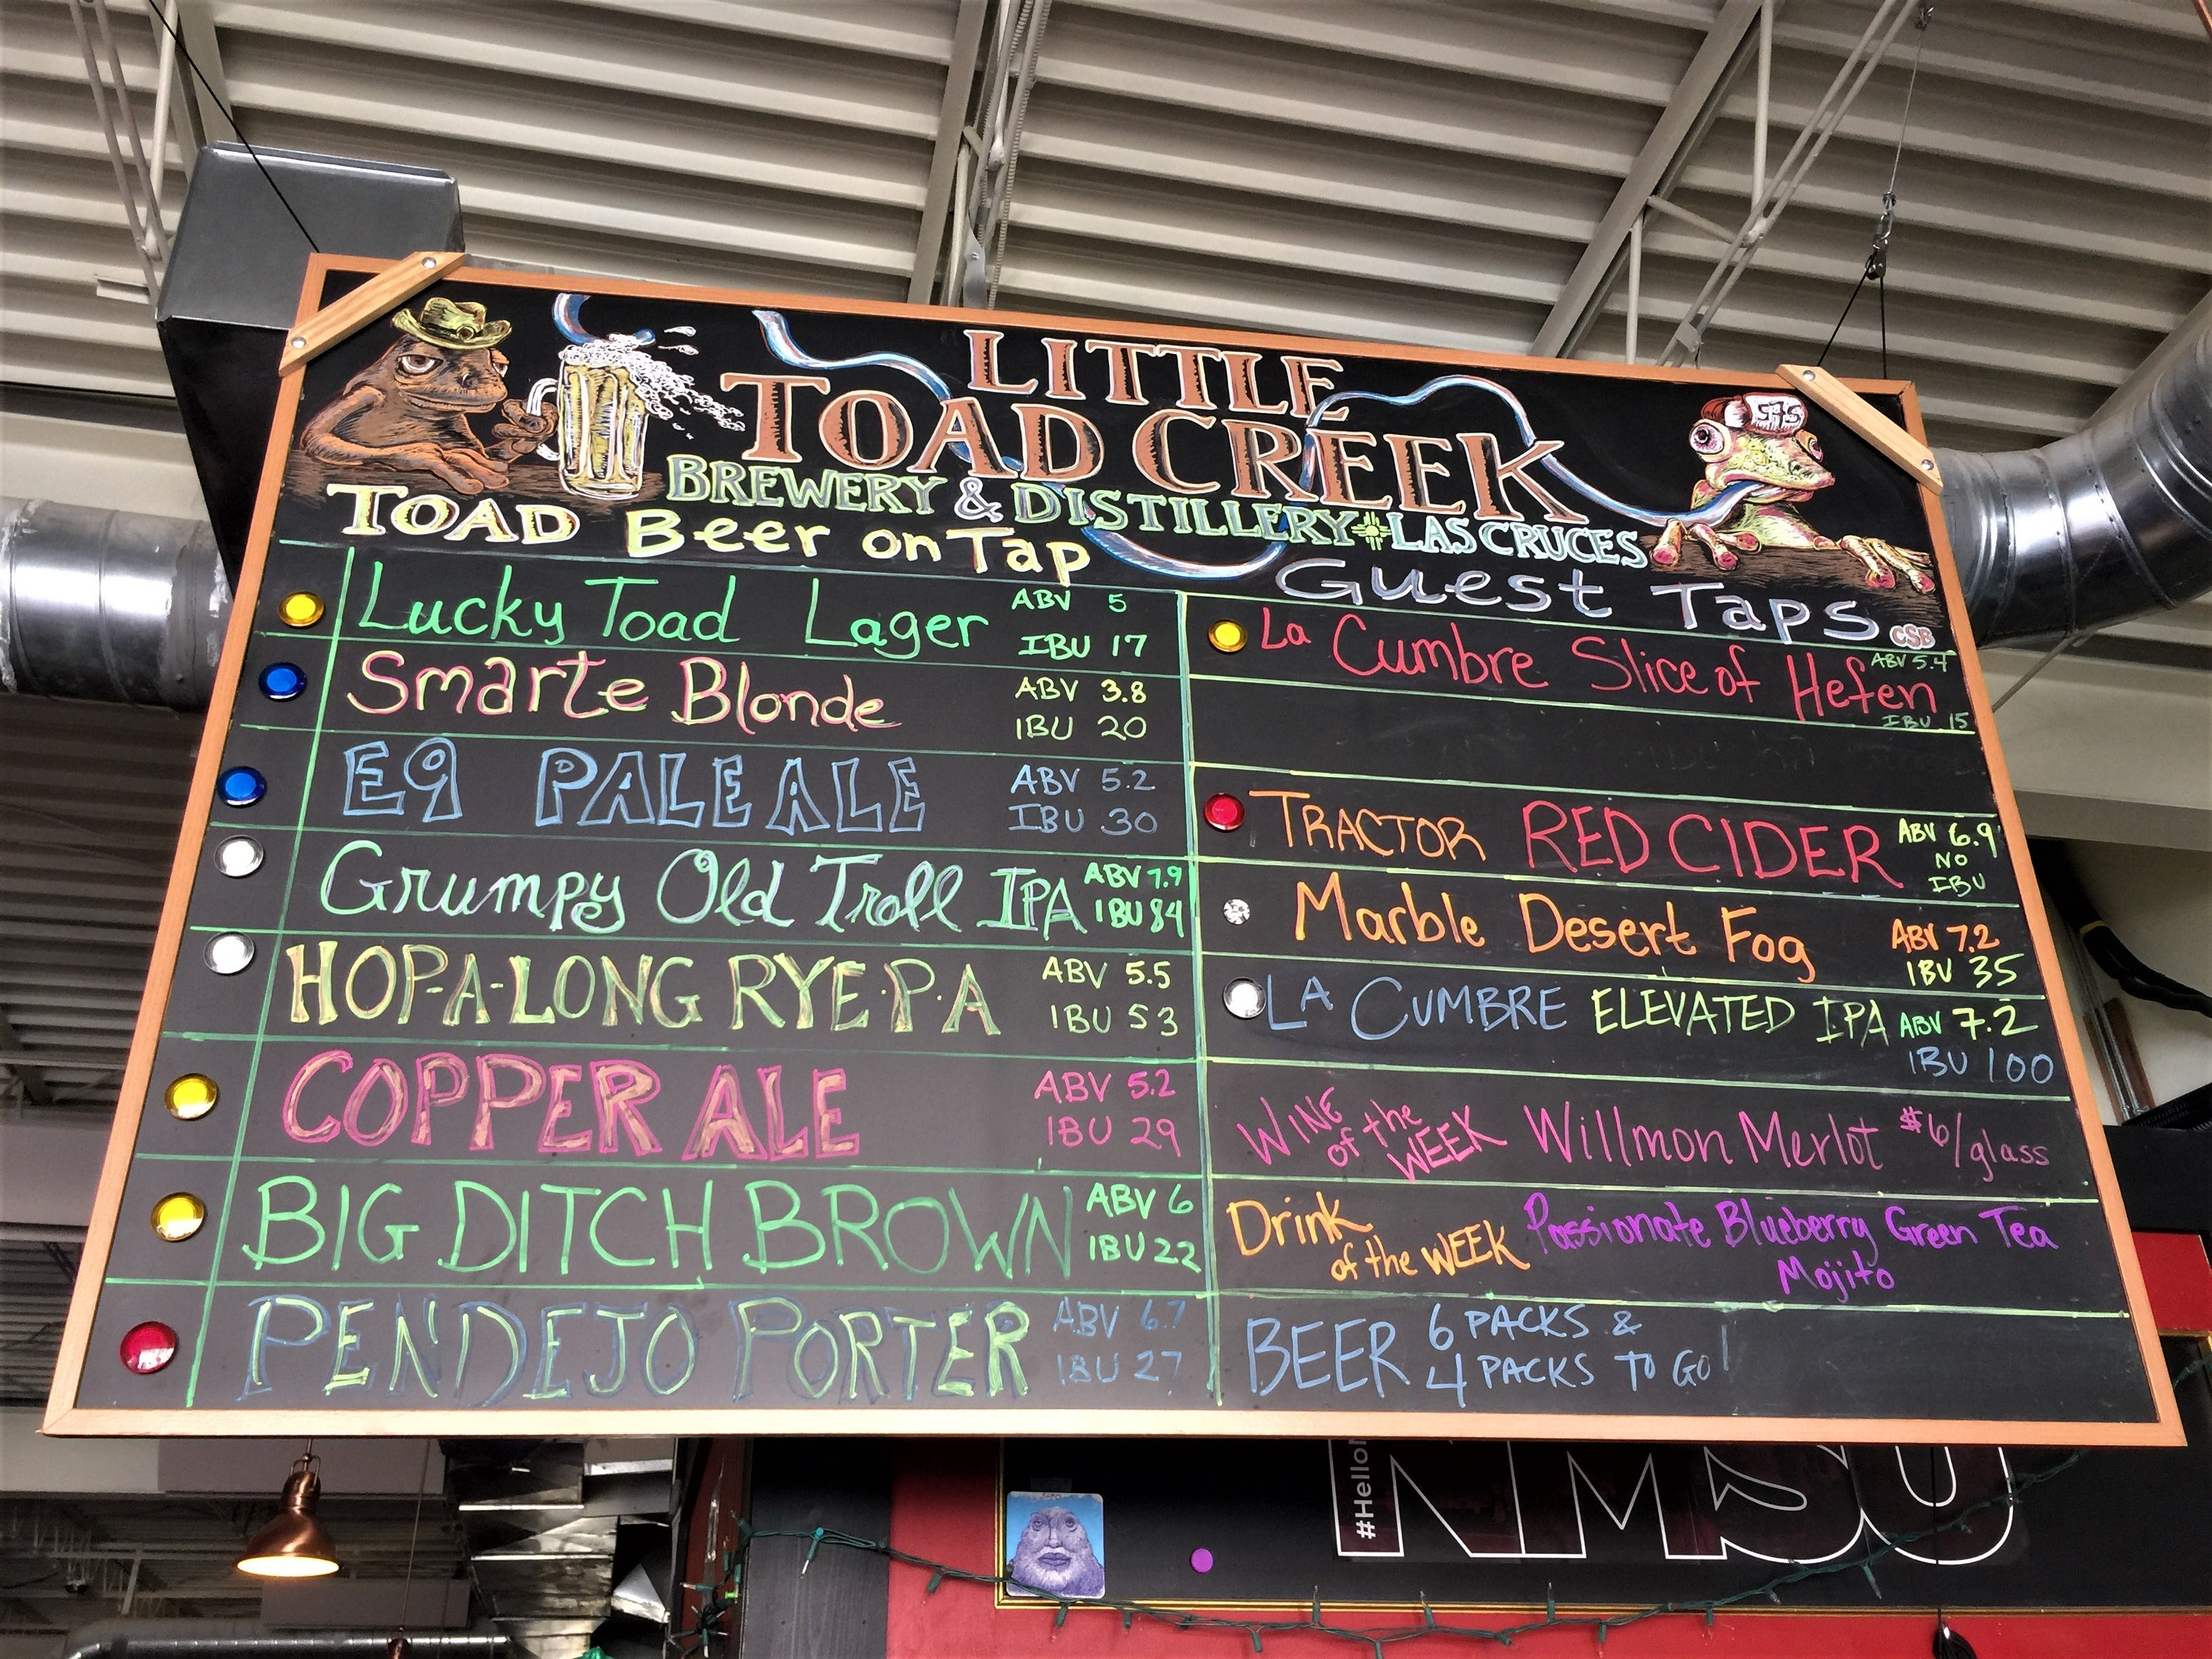 Little Toad Creek Brewery & Distillery's colorful and quirky beer tap menu.